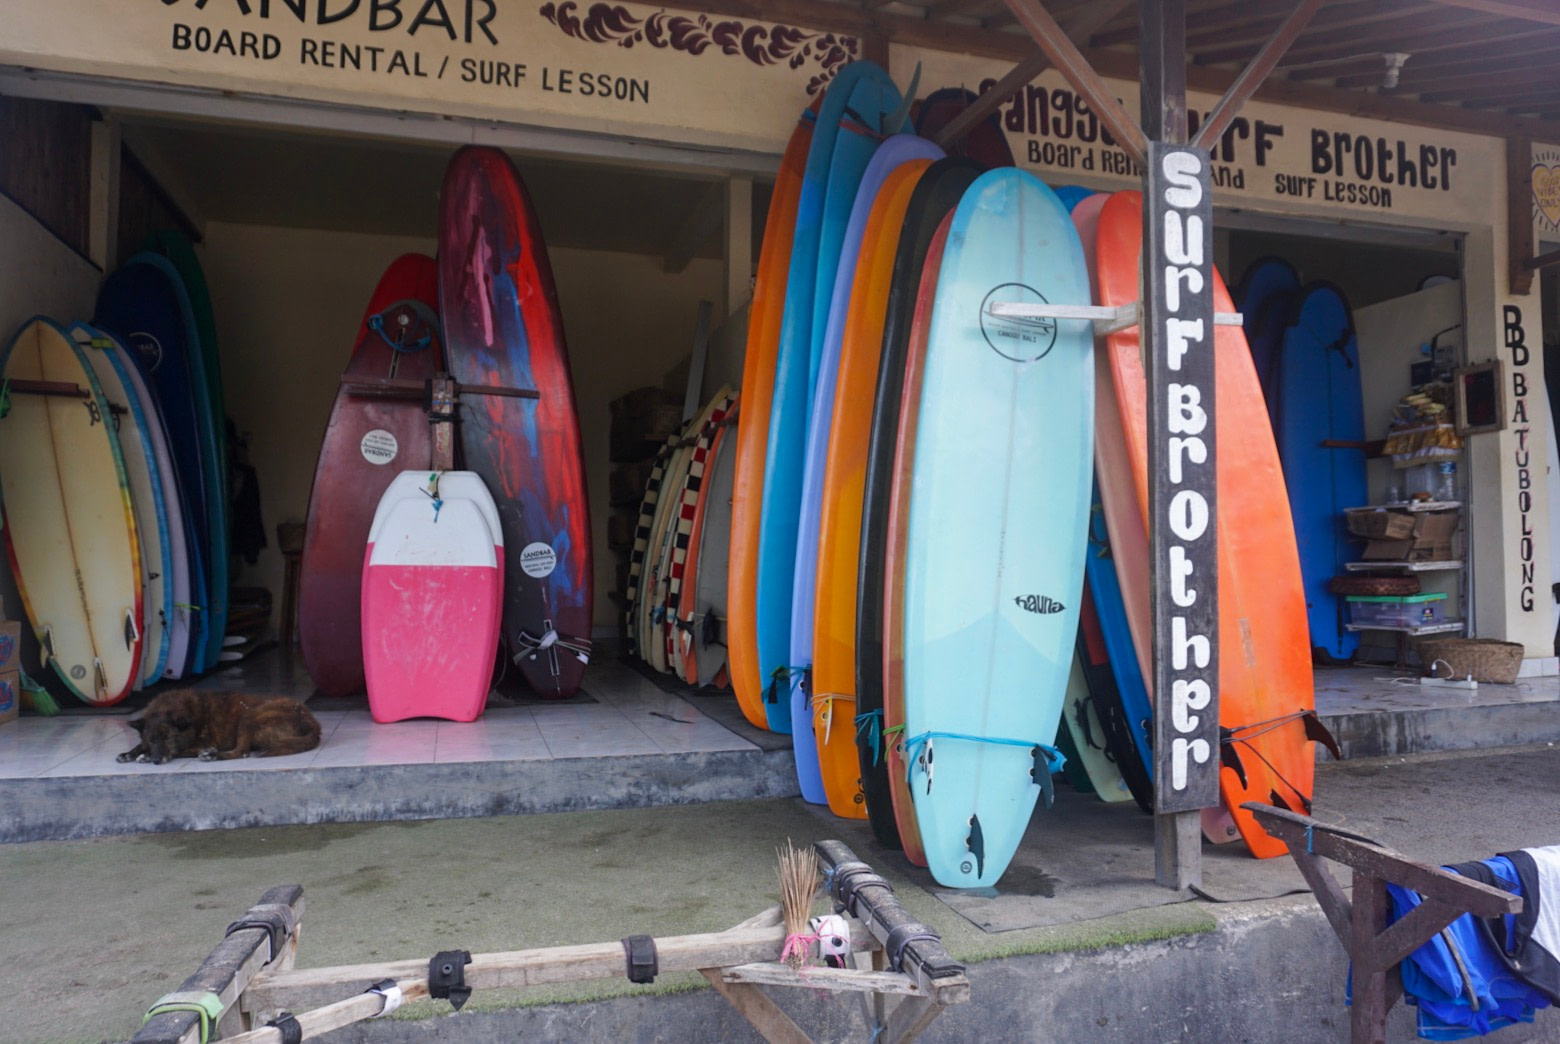 surboards stacked up for hire with a brown dog resting nearby